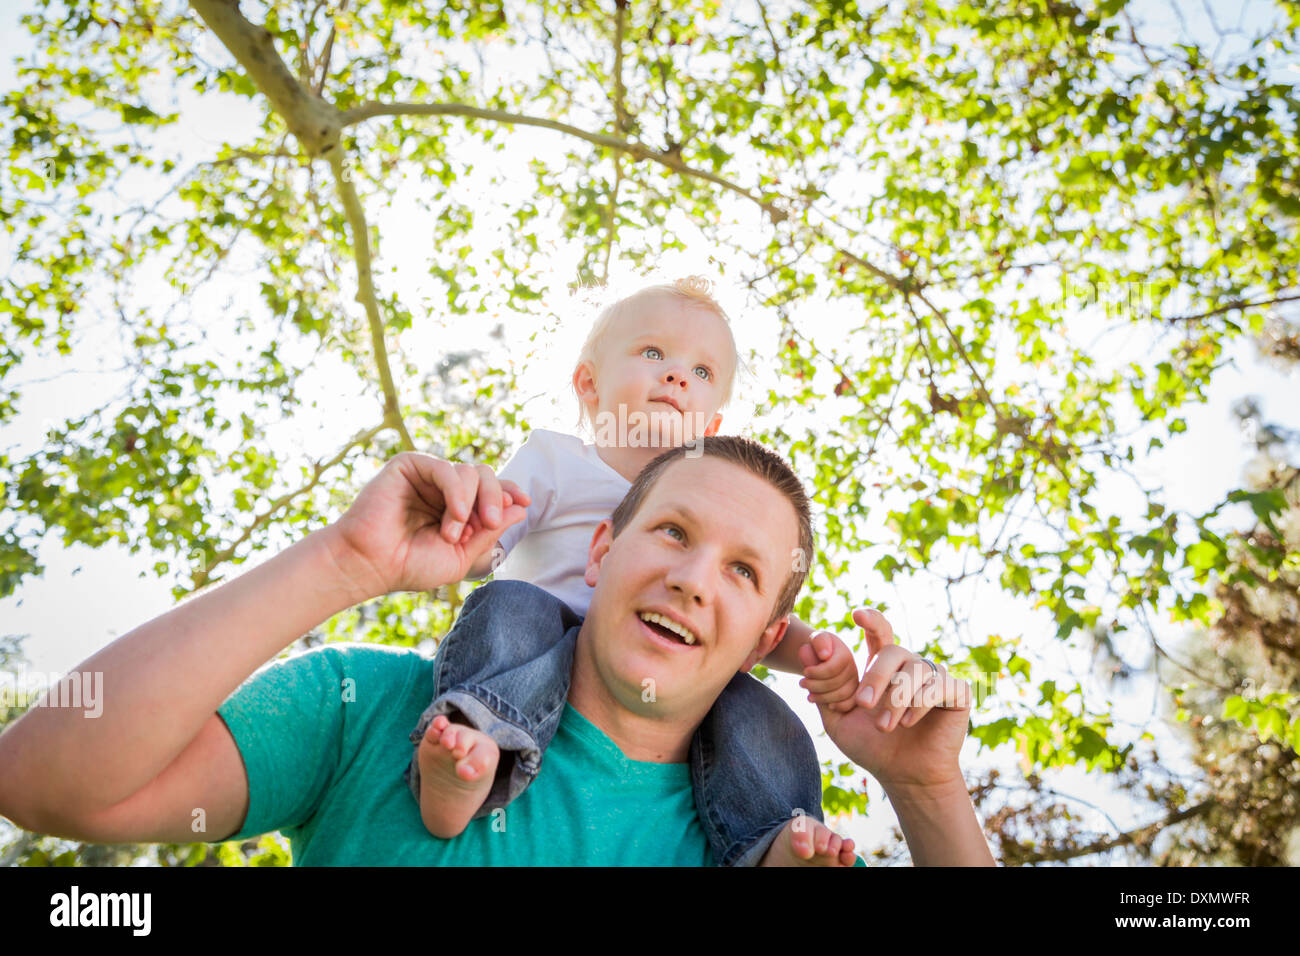 Cute Young Boy Rides Piggyback On His Dads Shoulders Outside at the Park. - Stock Image